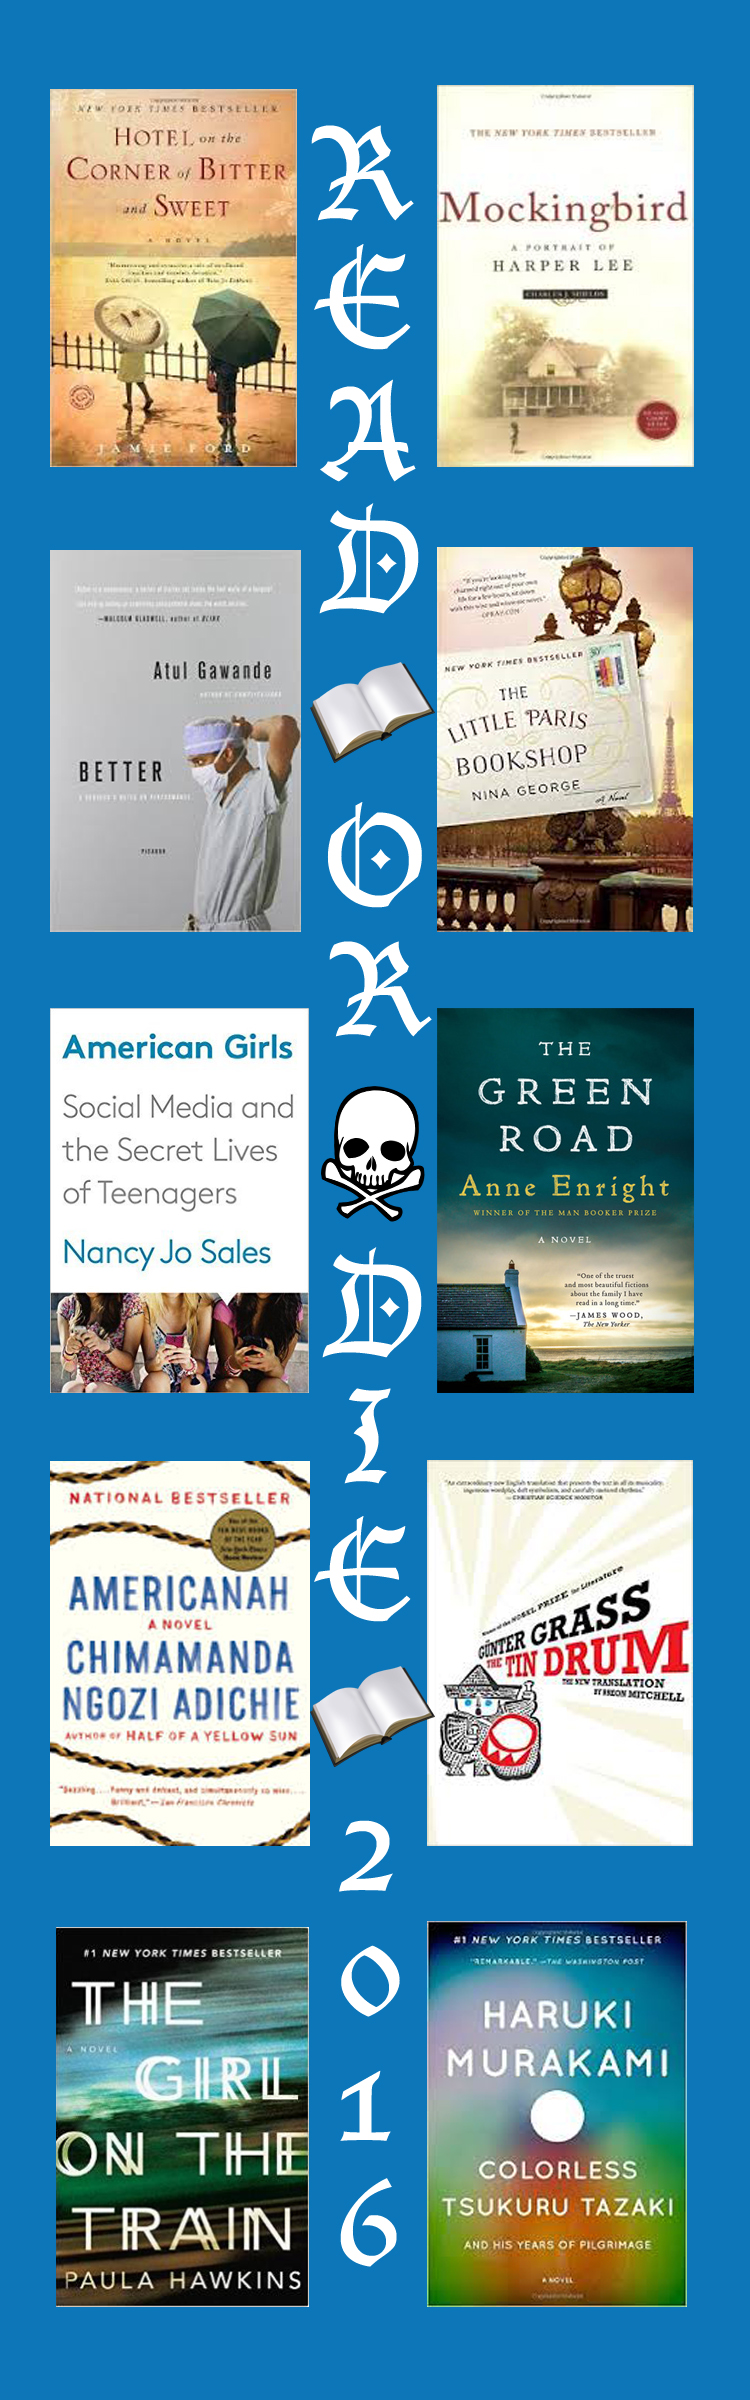 We read some fantastic books this year! Better and Americanah were my two favorites.